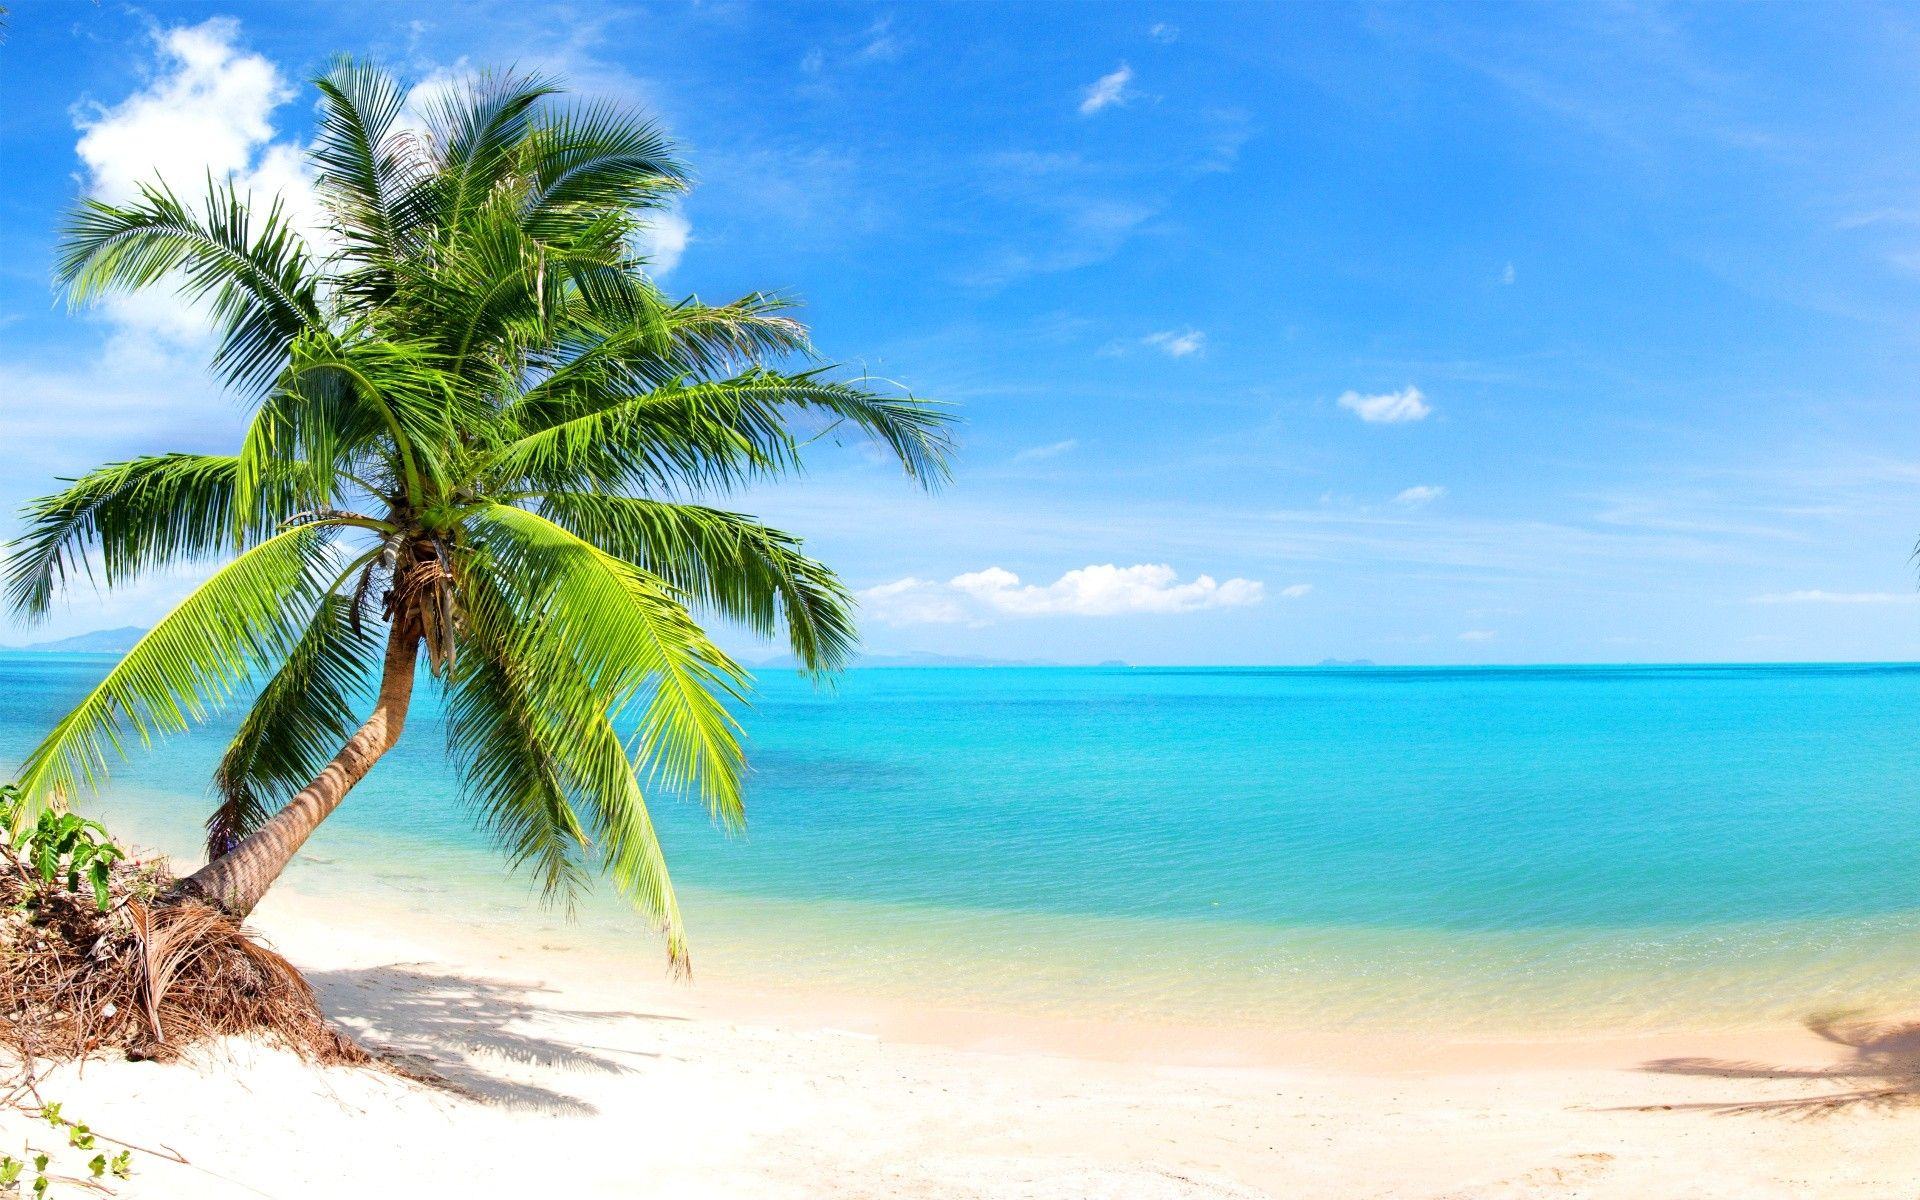 Download Tropical Beaches With Palm Trees S Wallpapers Mobile Is Cool Wallpapers Palm Trees Wallpaper Beach Phone Wallpaper Beach Wallpaper